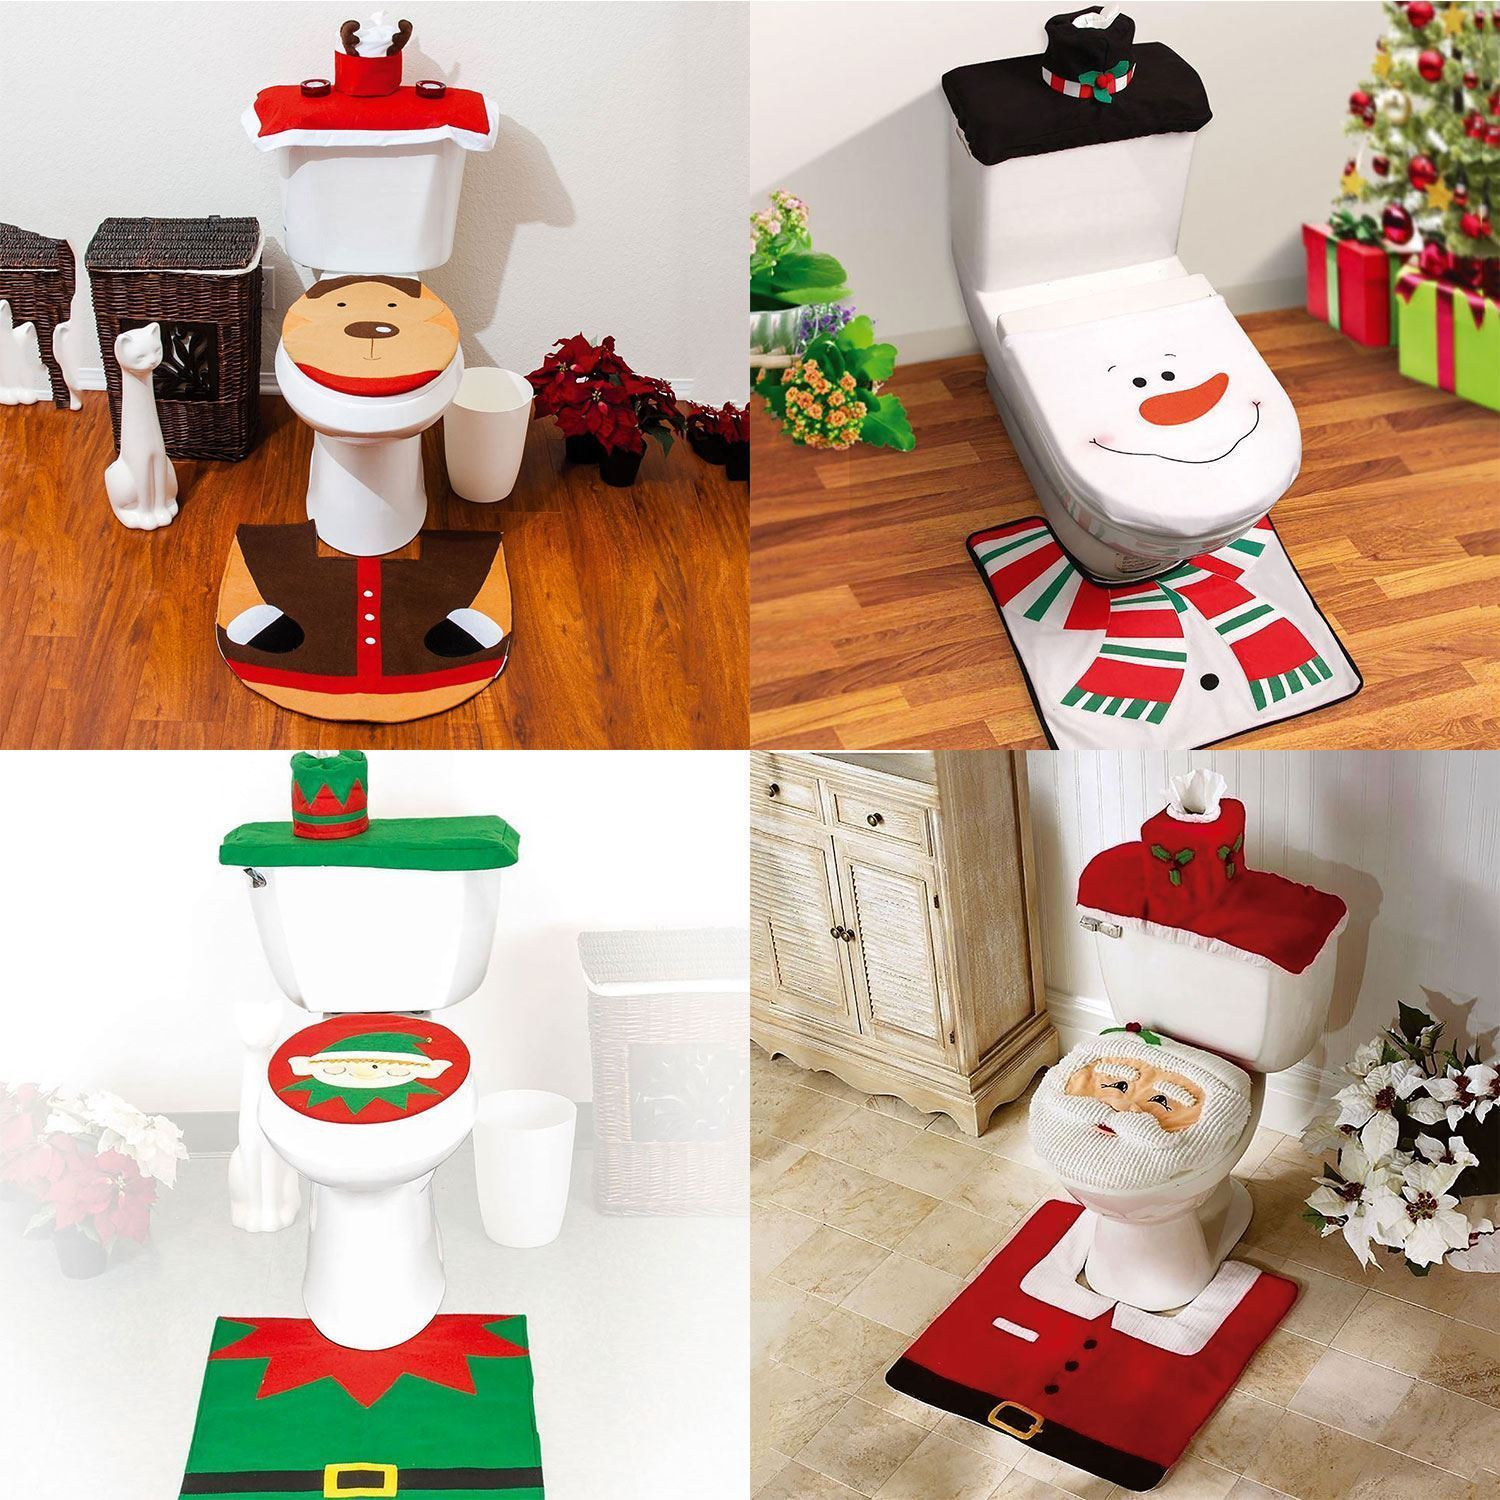 Snowman Bathroom Sets Details About Set Of 3 Christmas Festive Santa Elf Snowman Reindeer Toilet Seat Cover Bathroom